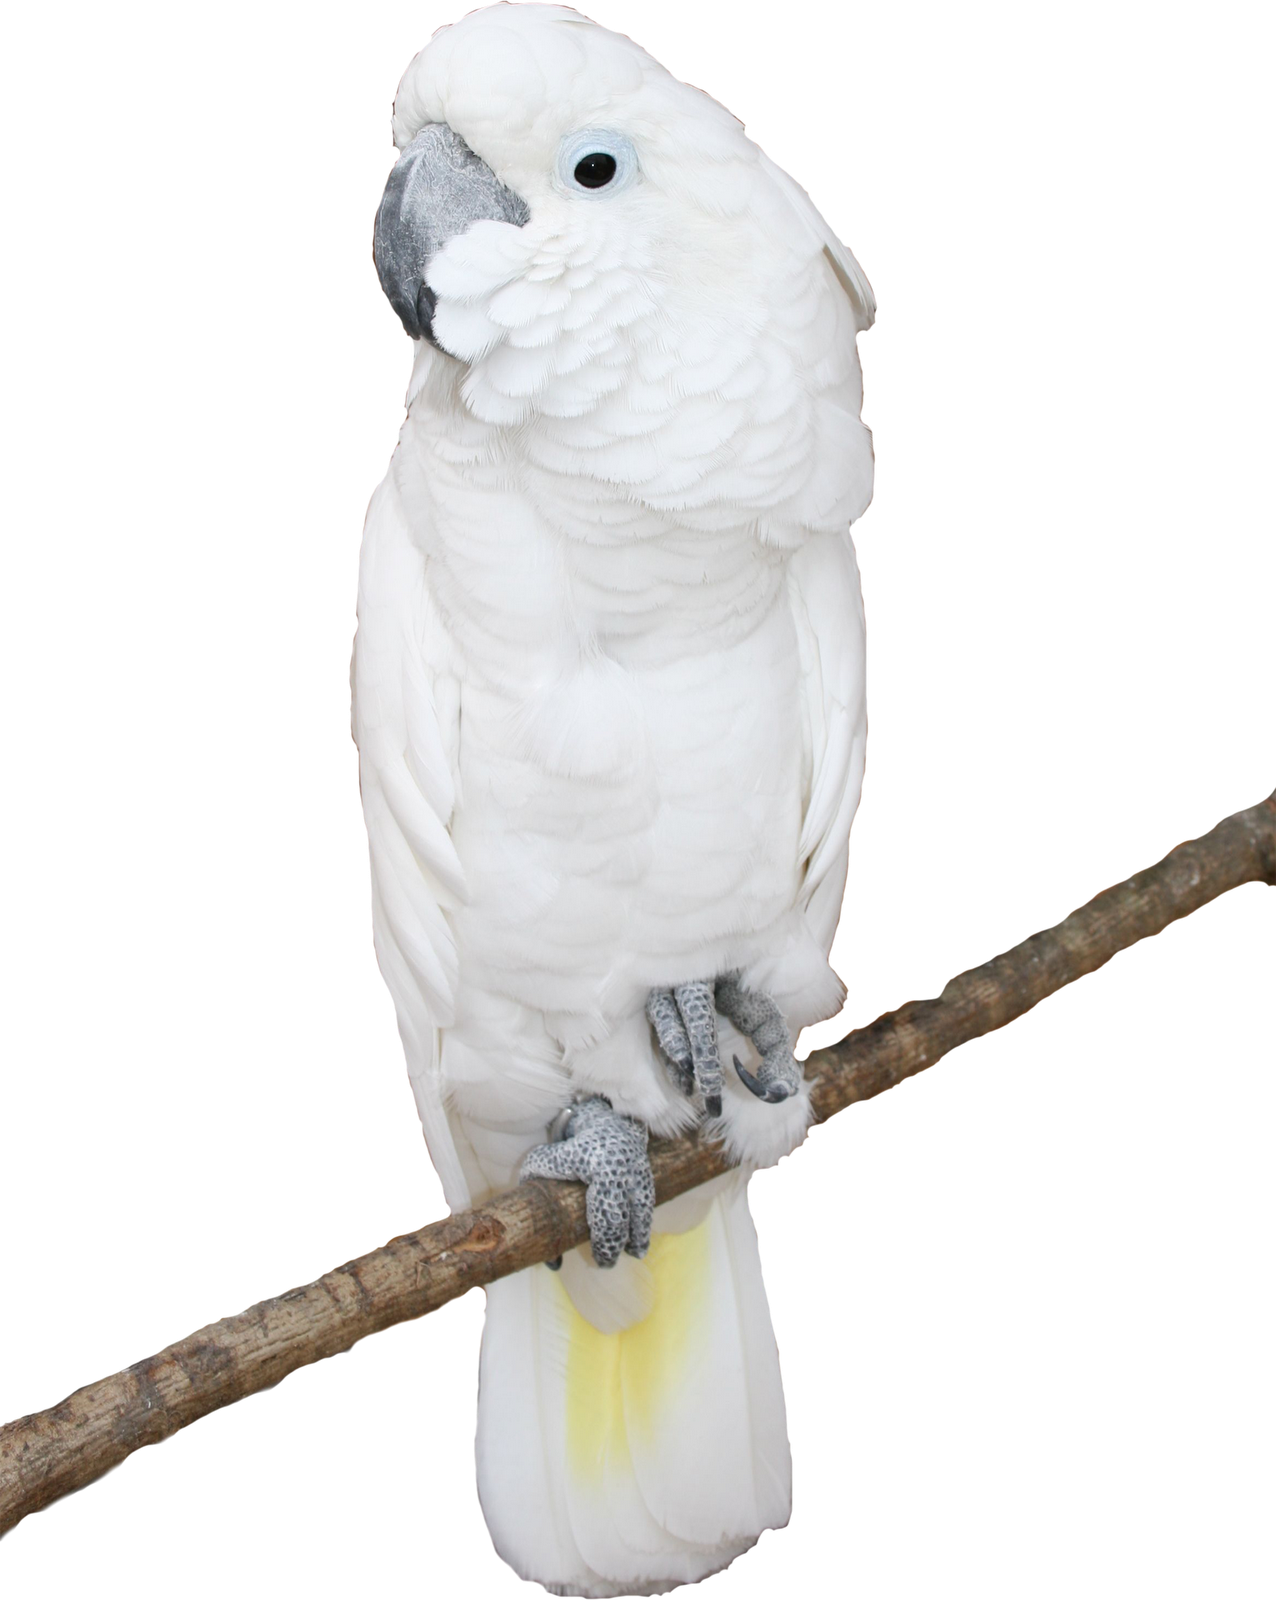 Http Home Designing Software Parrot Psd And Png On White Background Free Background